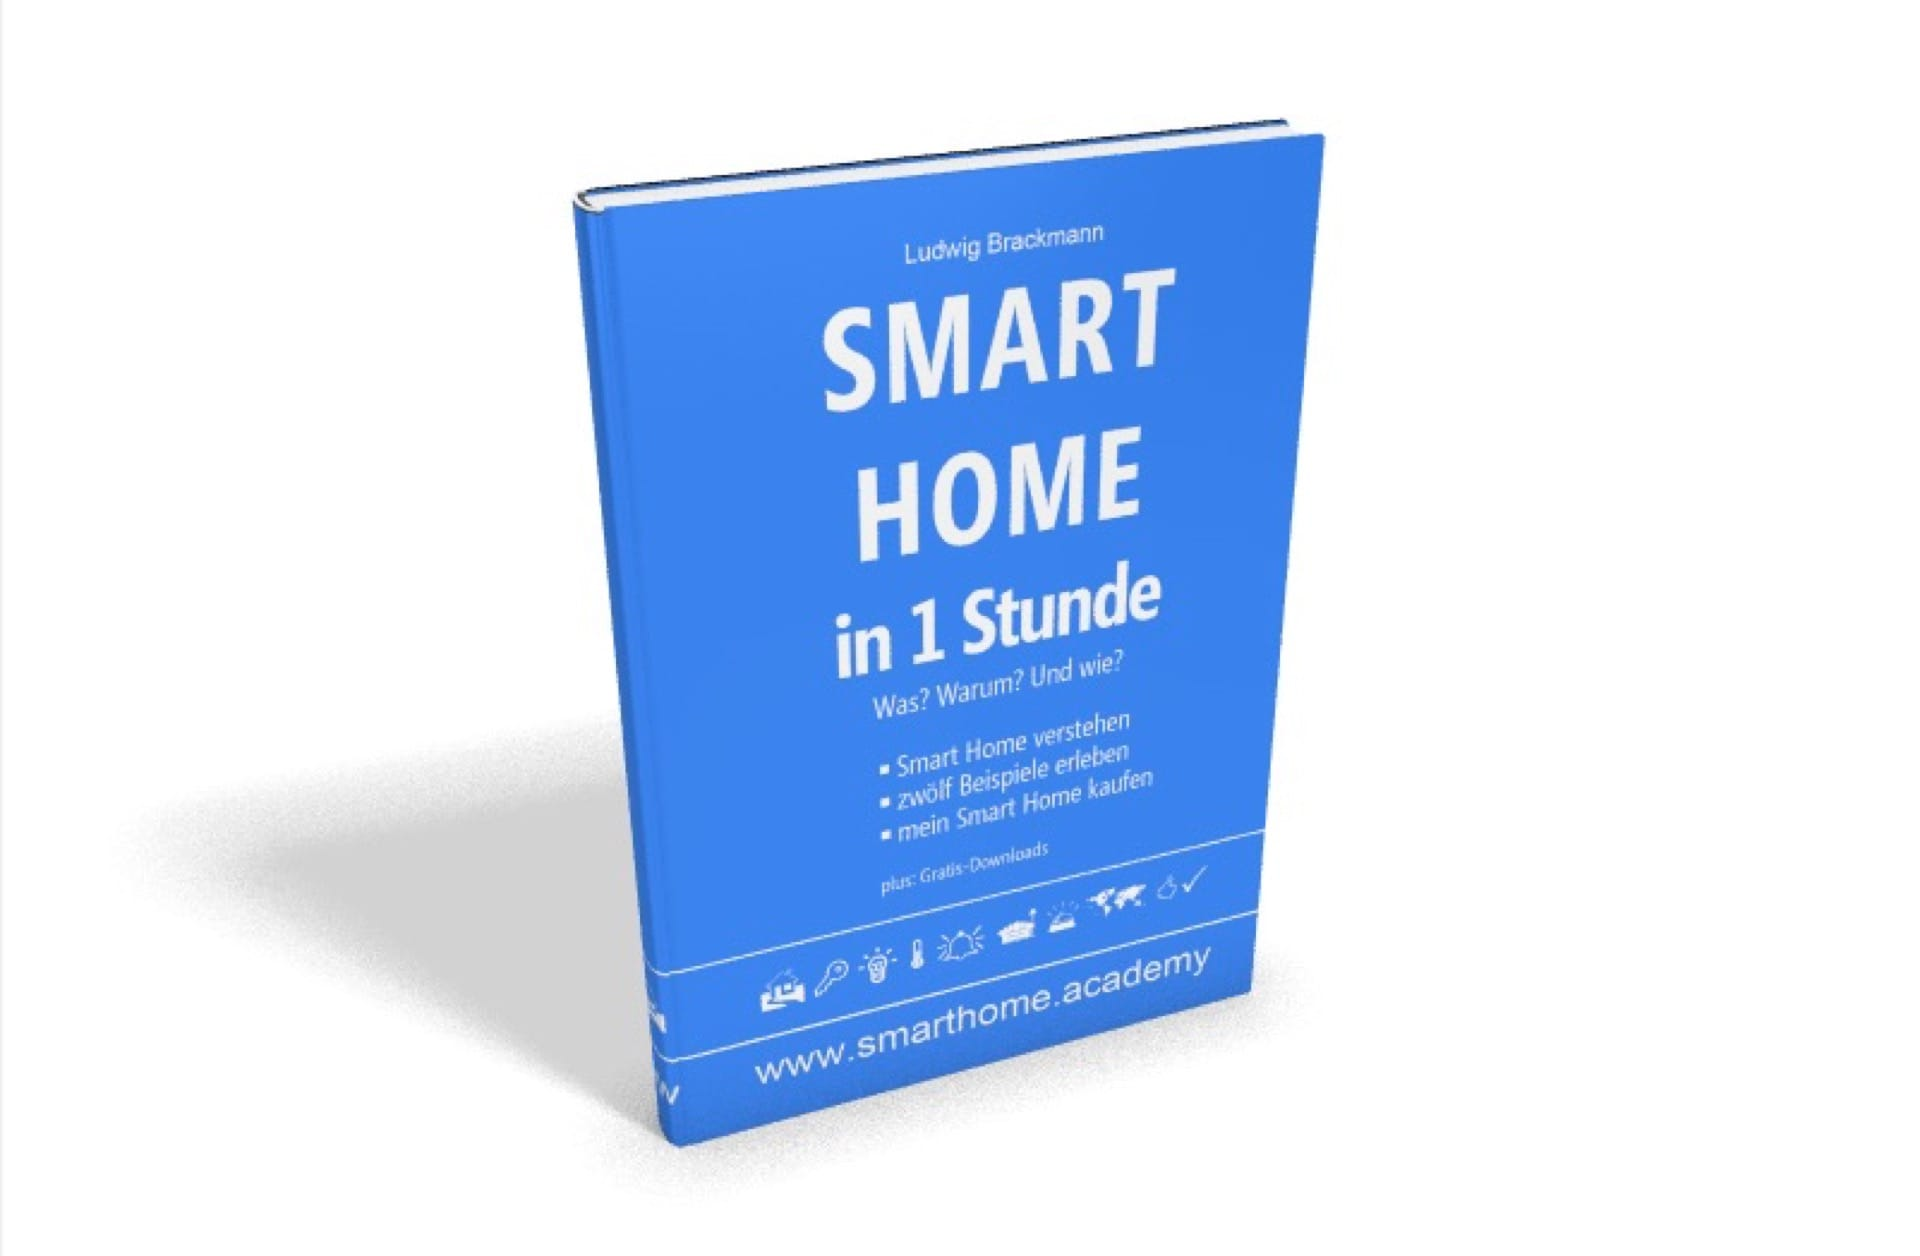 Smart Home Buch: Smart Home in 1 Stunde.